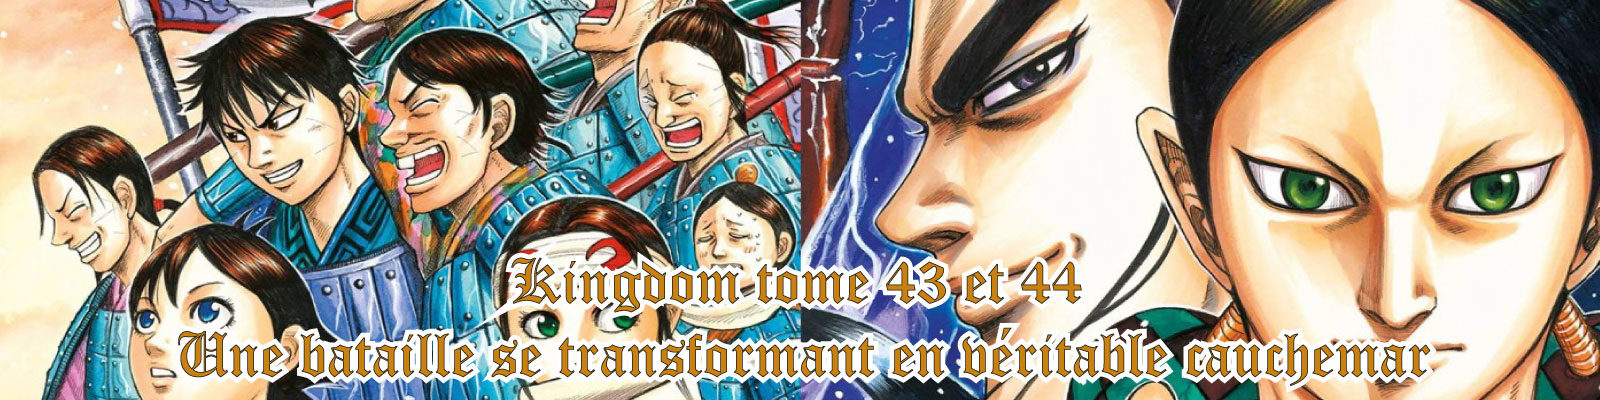 Kingdom 43 et 44